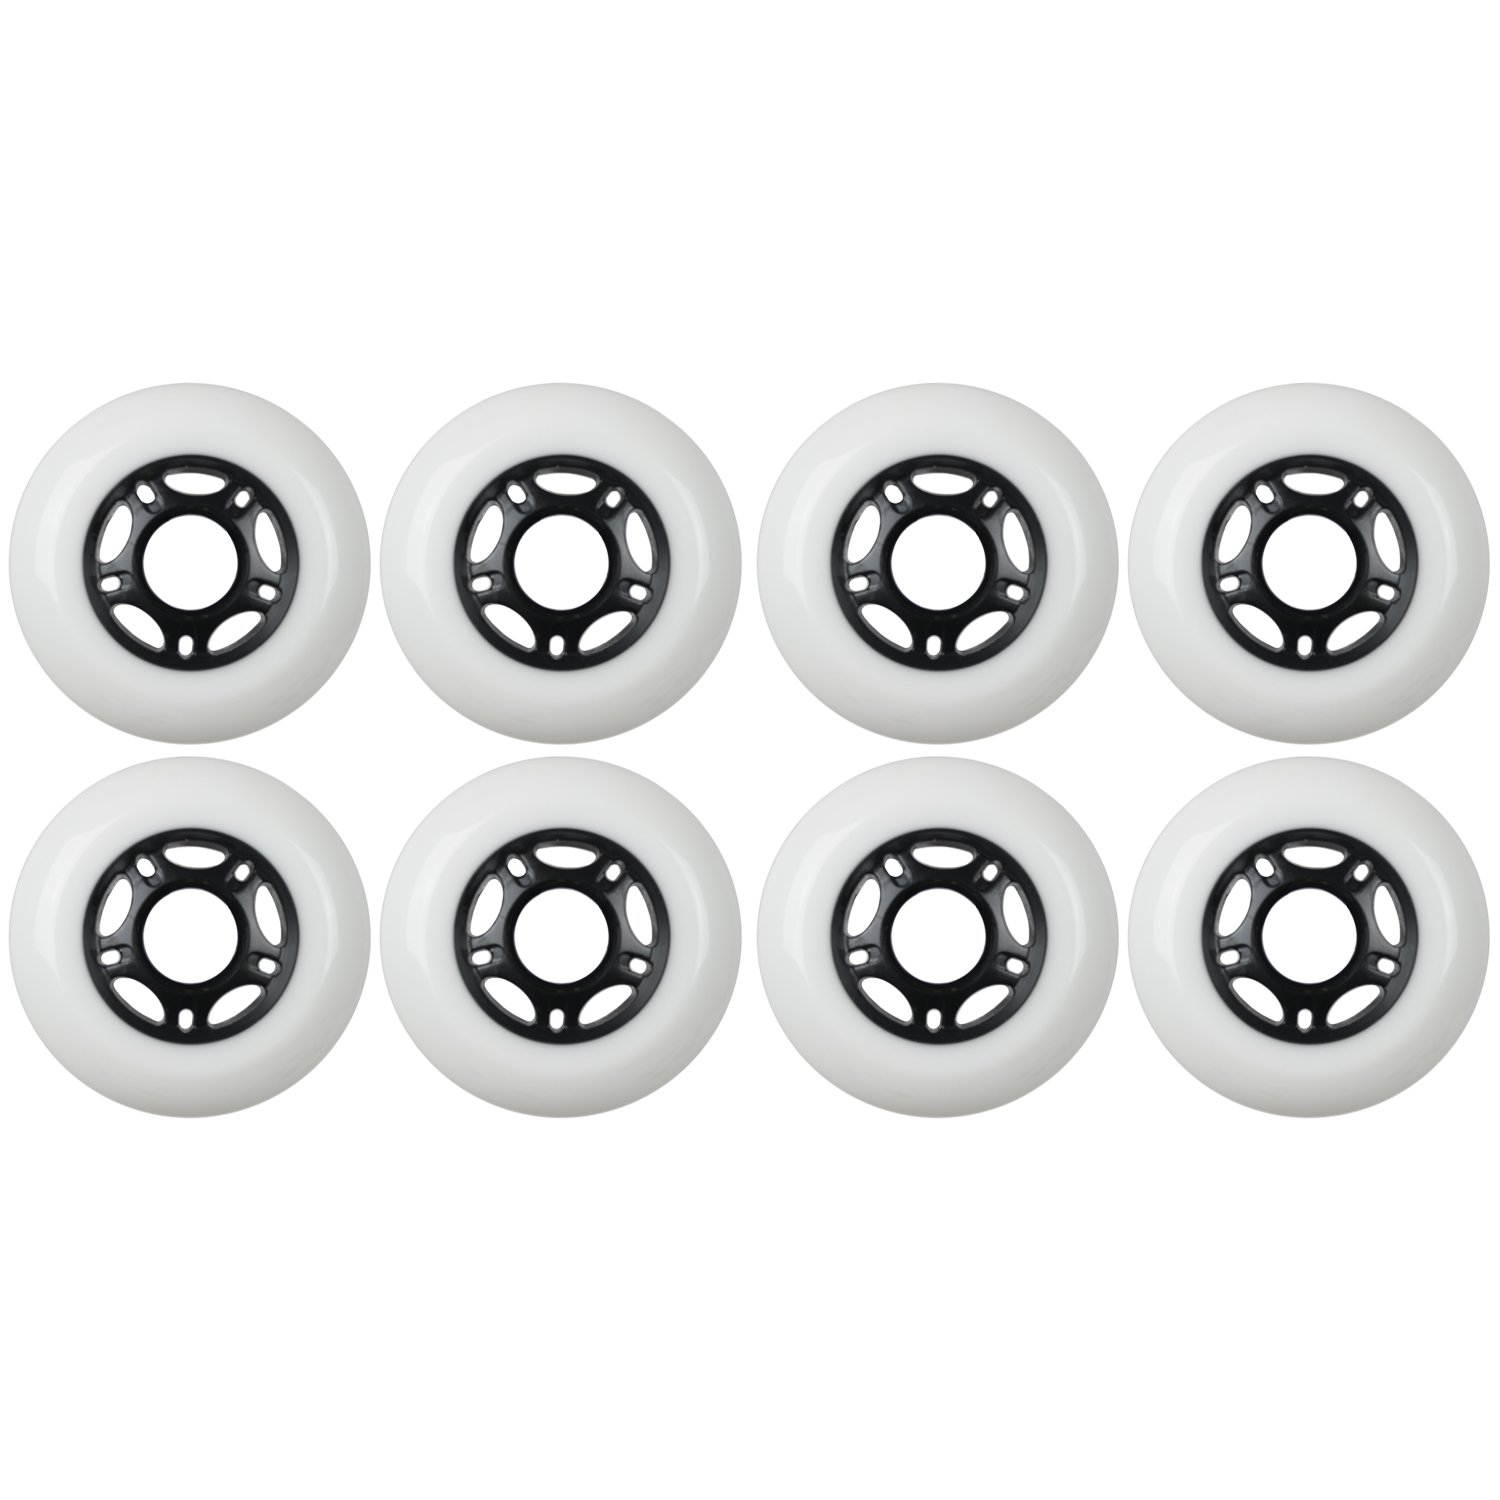 KSS Outdoor Asphalt Formula 89A Inline Skate X8 Wheels, White, 72mm by KSS